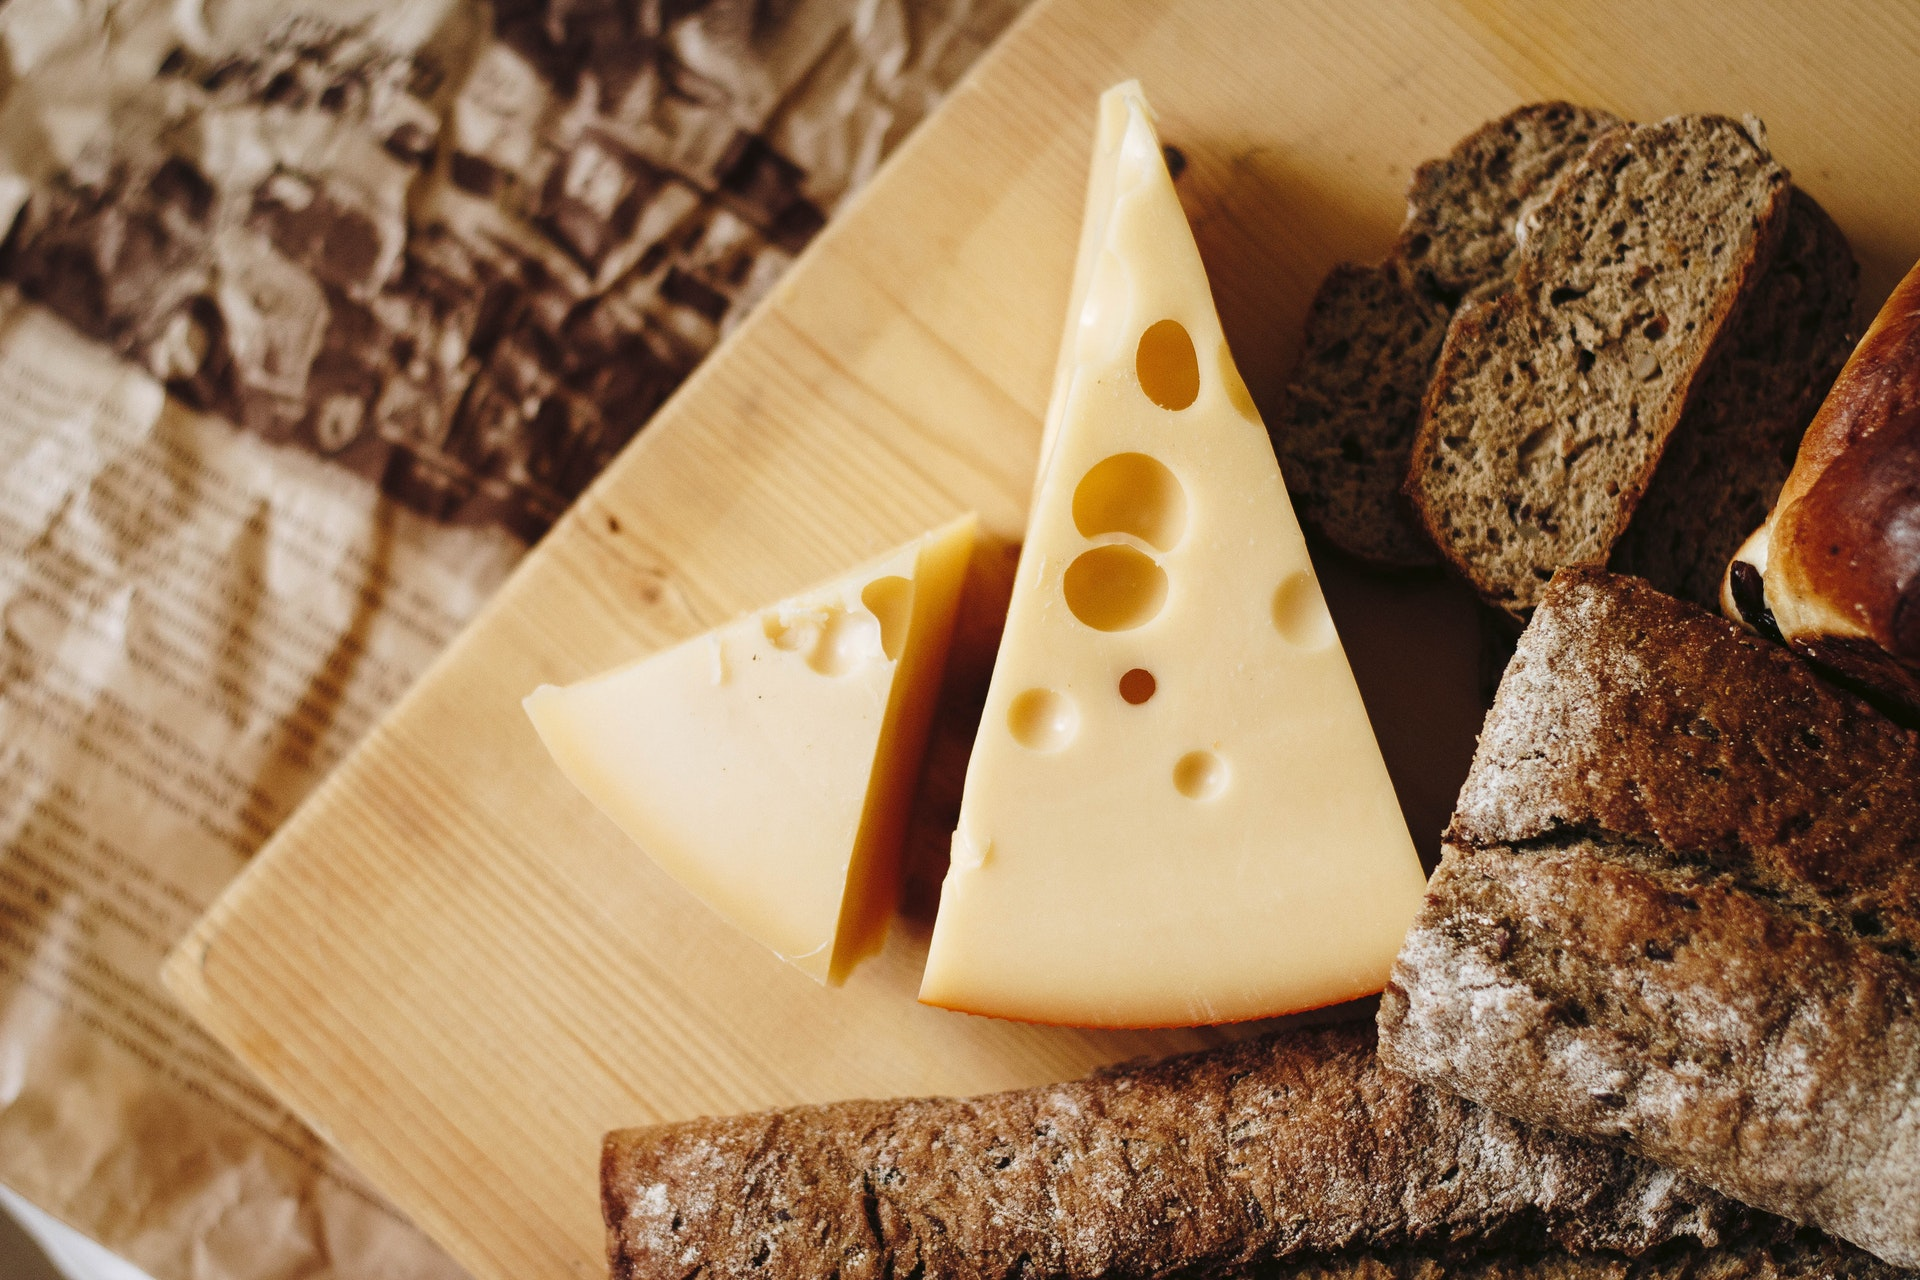 What animal does cheese come from